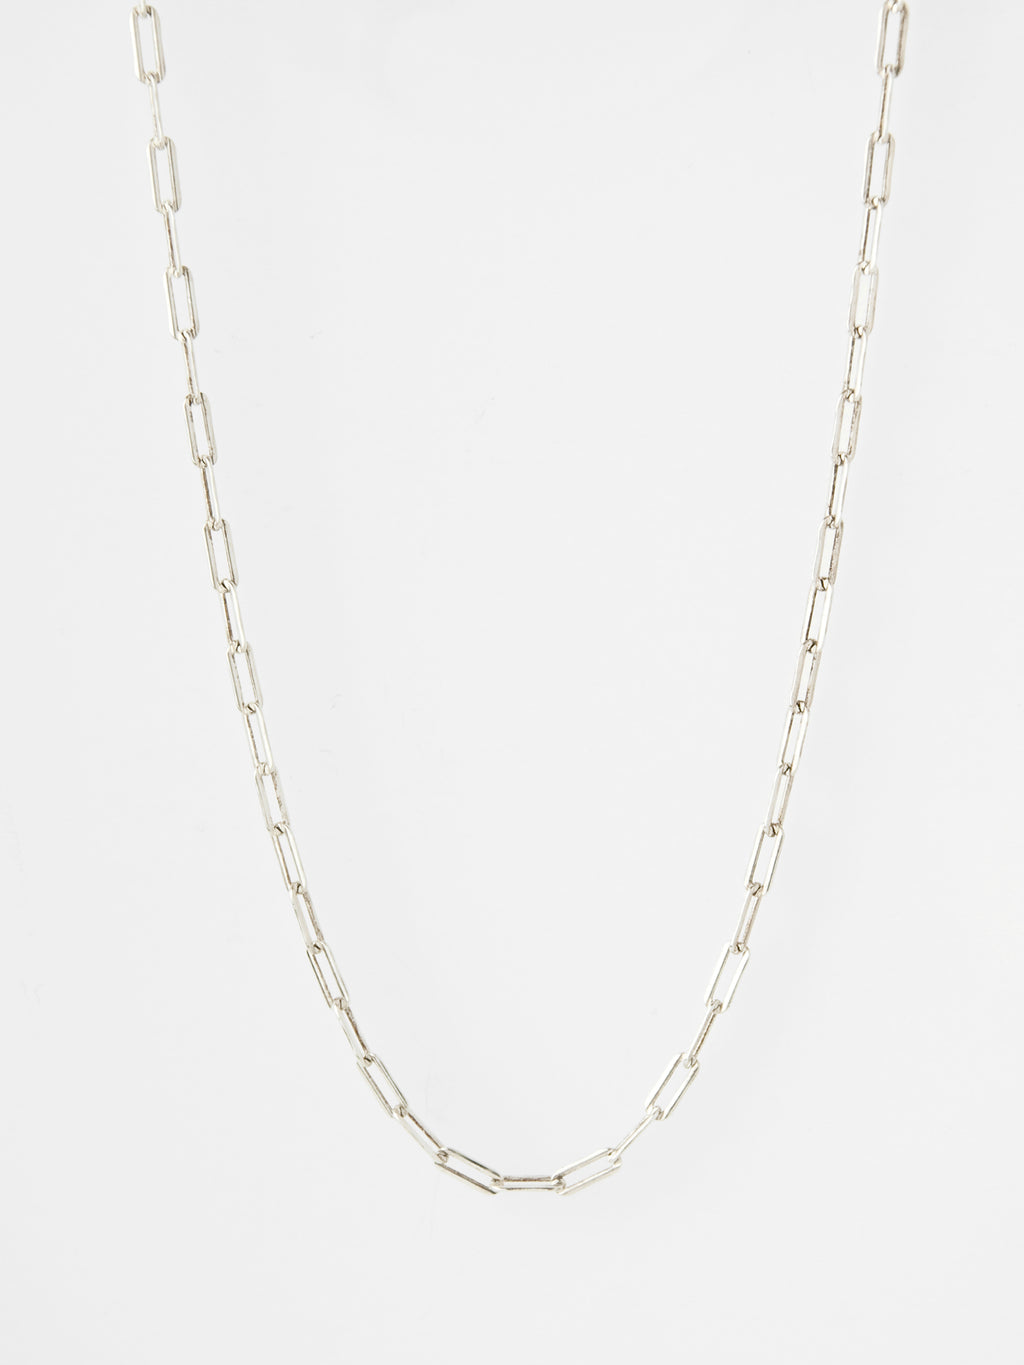 Riva Chain / Sterling Silver